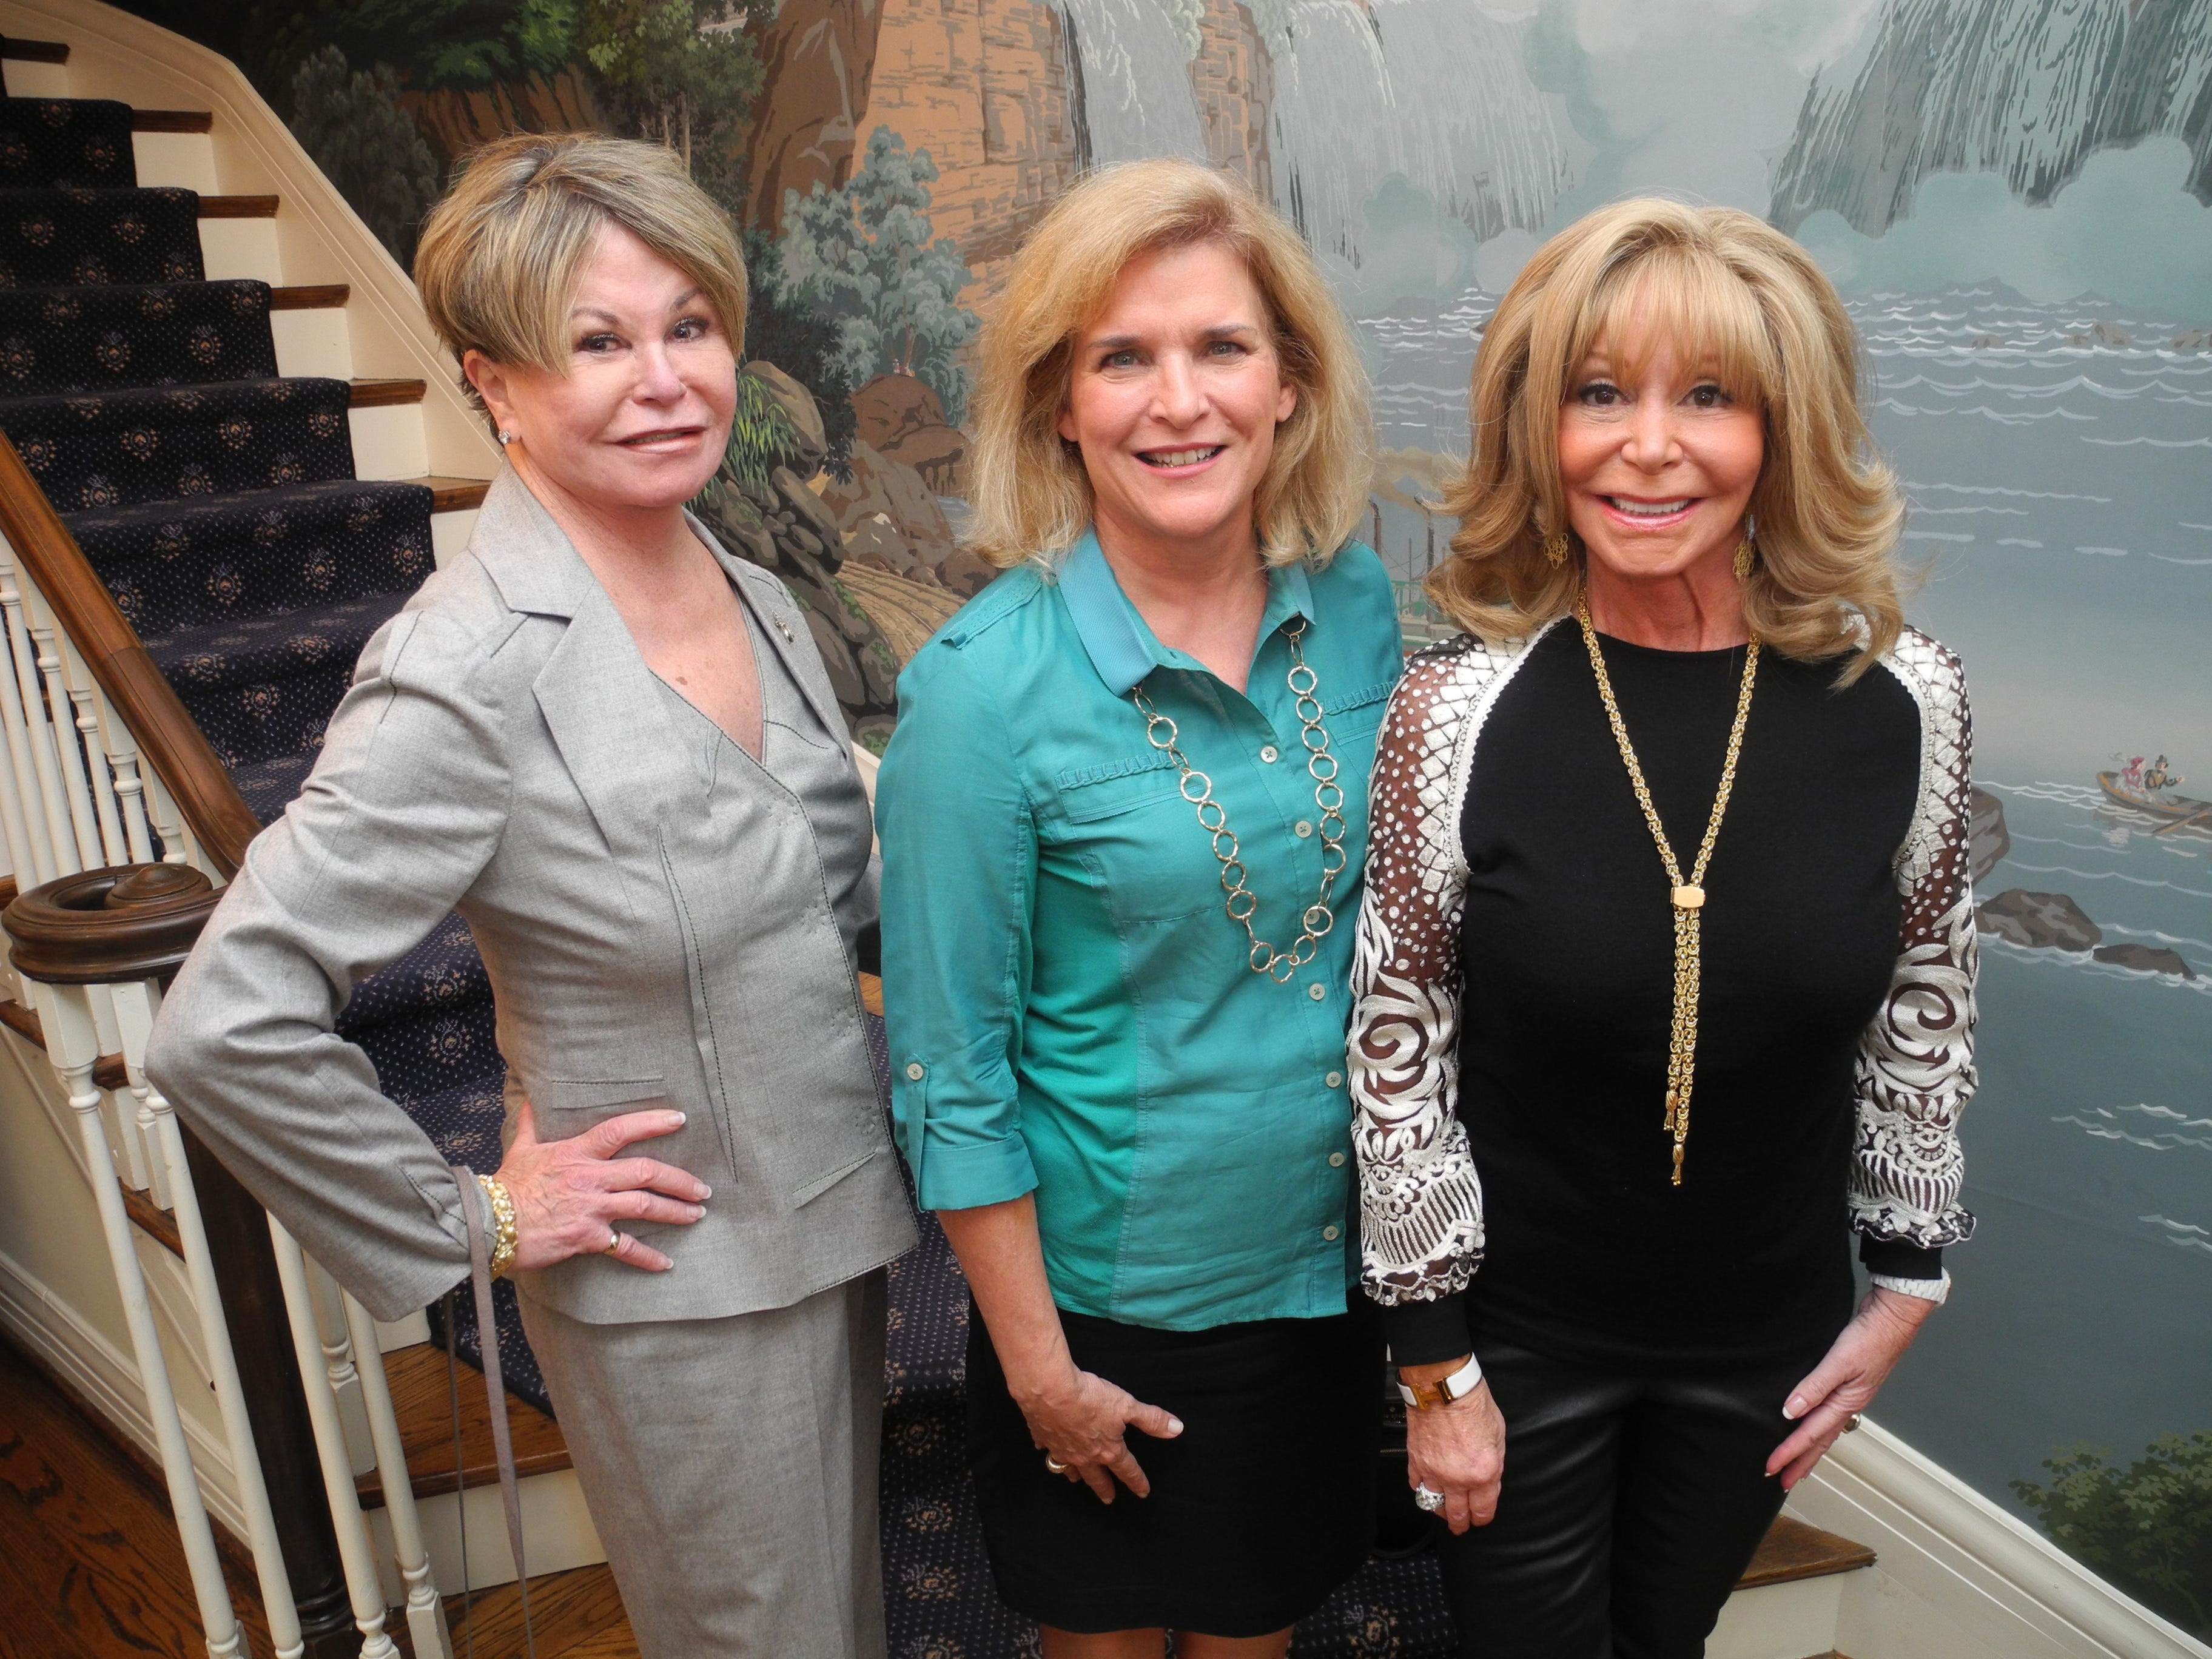 Colleen Conway Welch, left, Julie Walker and Joyce Vise at the 2014 Symphony Ball Prelude, held at the home of Mary and Tom Gambill.